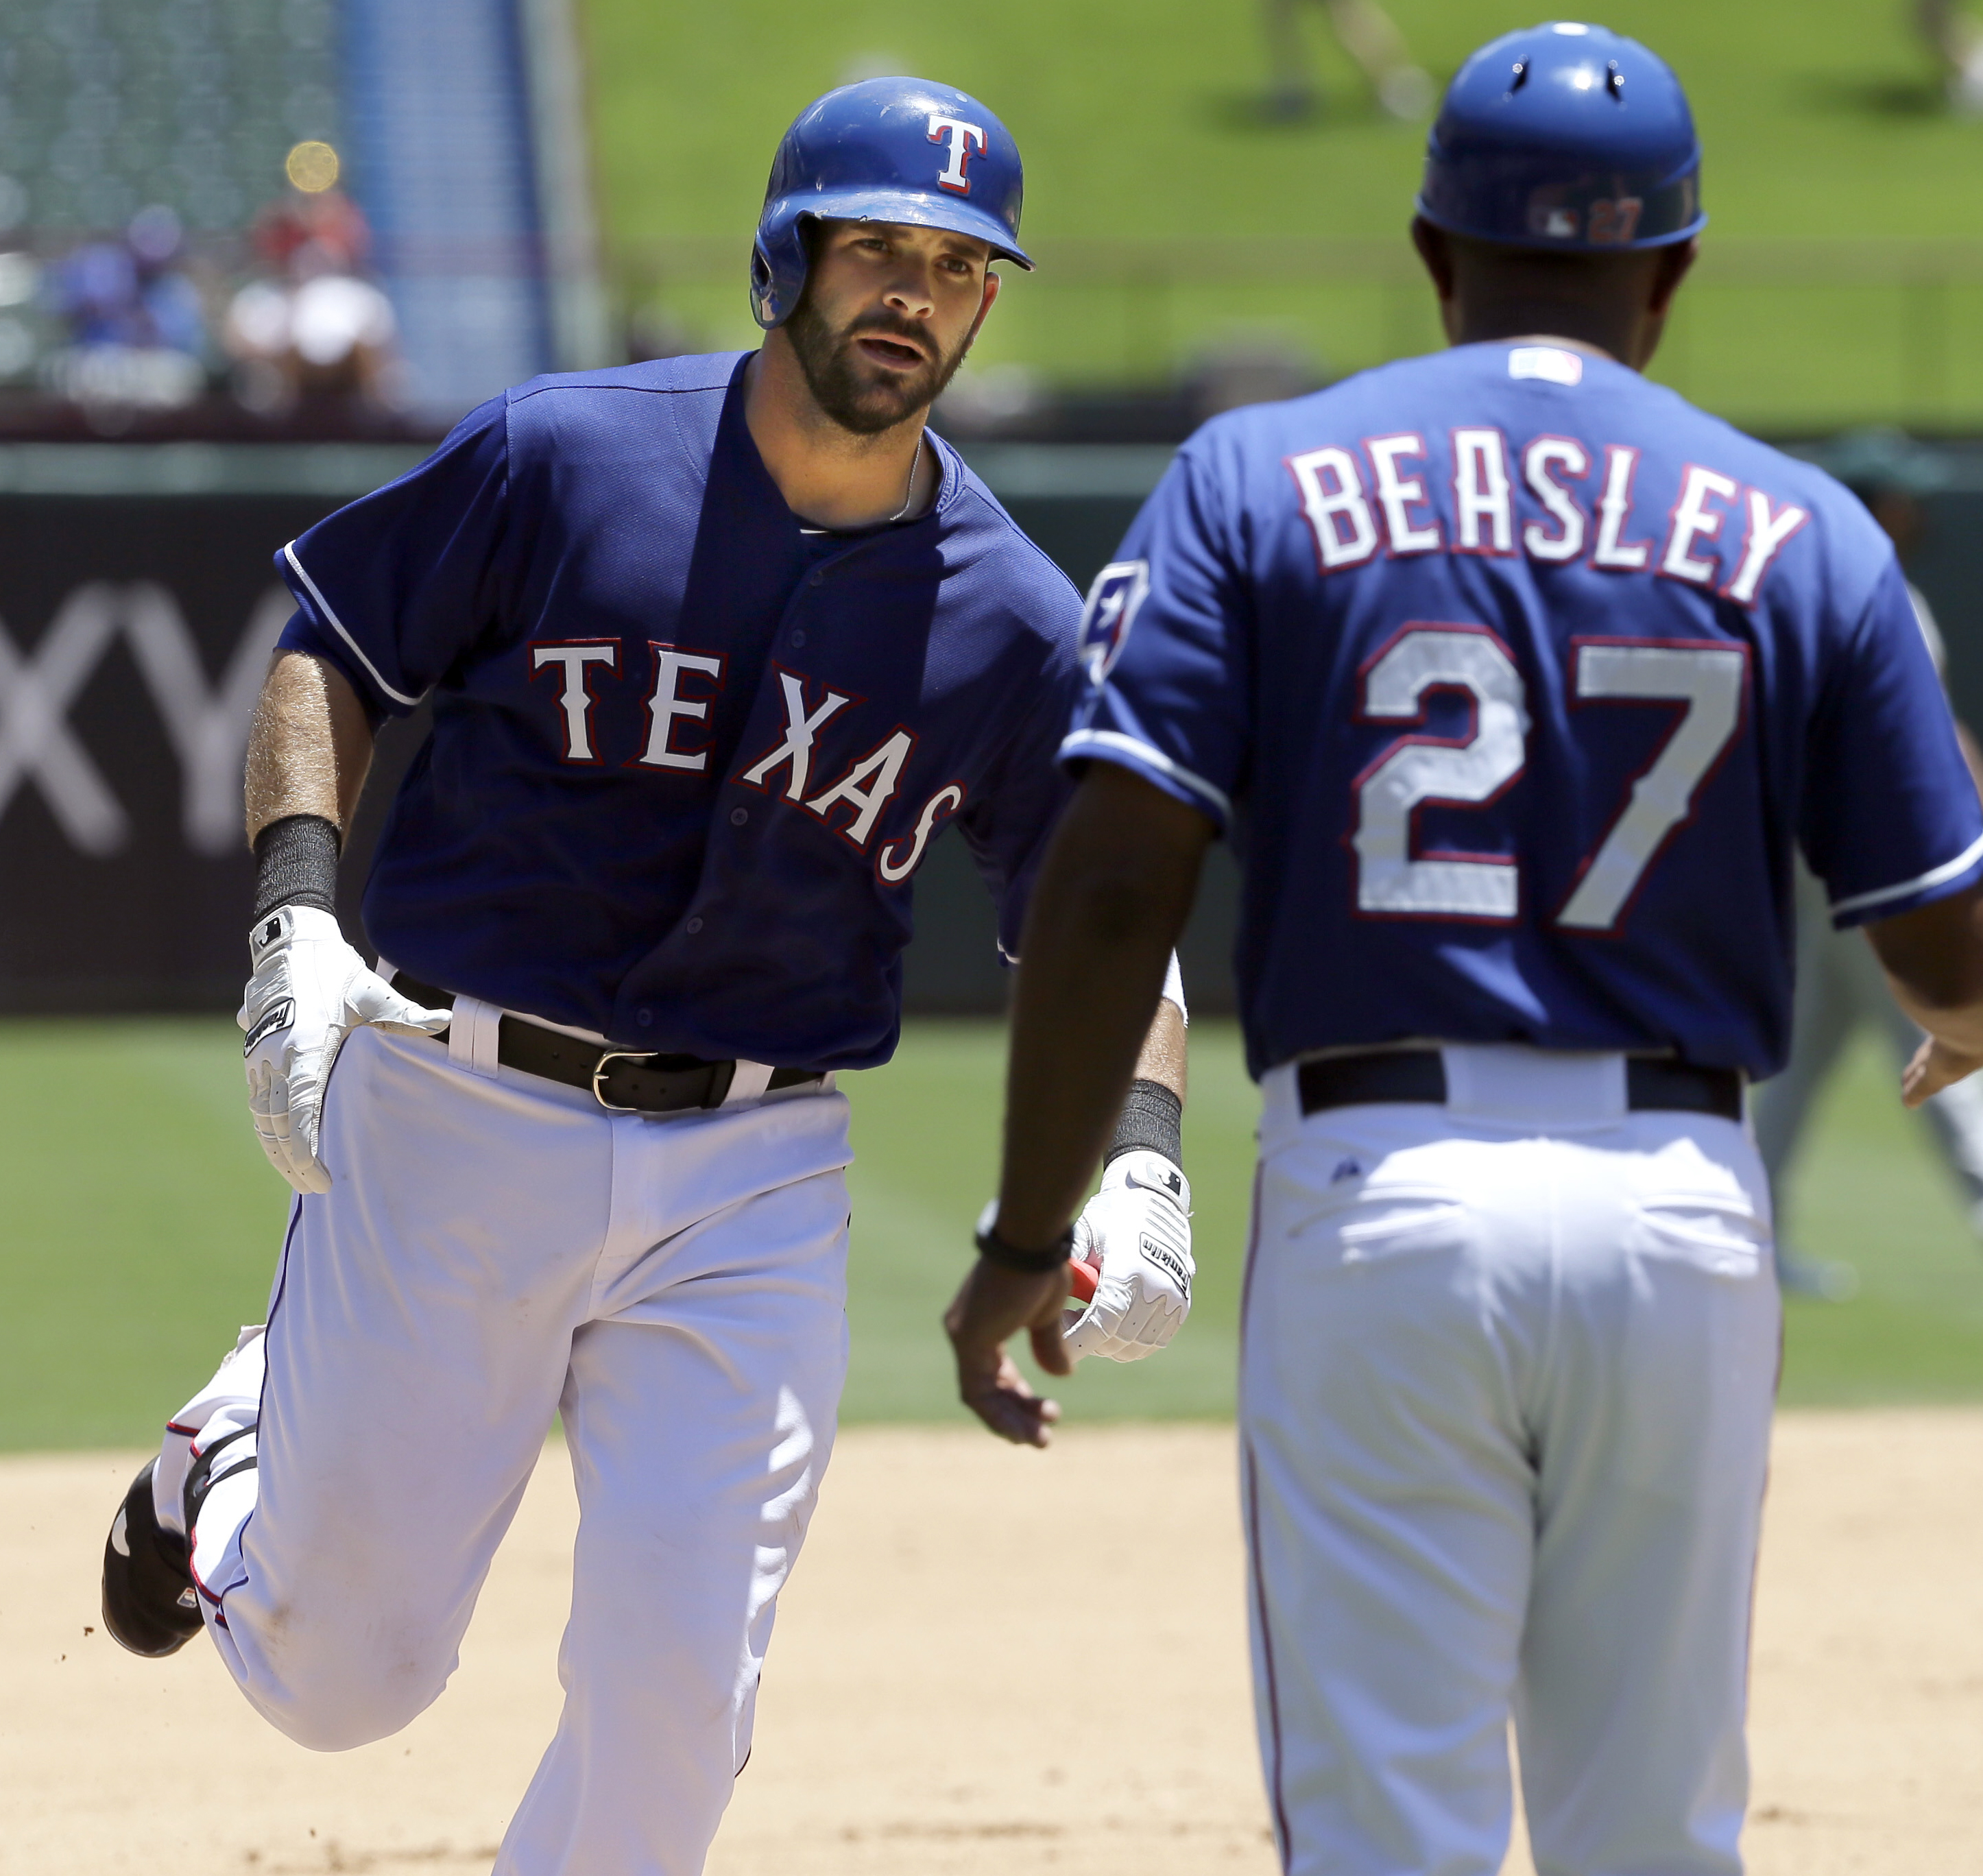 Texas Rangers' Mitch Moreland, left, is greeted by third base coach Tony Beasley as he rounds the bases after hitting a solo home run during the fourth inning of a baseball game against the Oakland Athletics, Thursday, June 25, 2015, in Arlington, Texas.